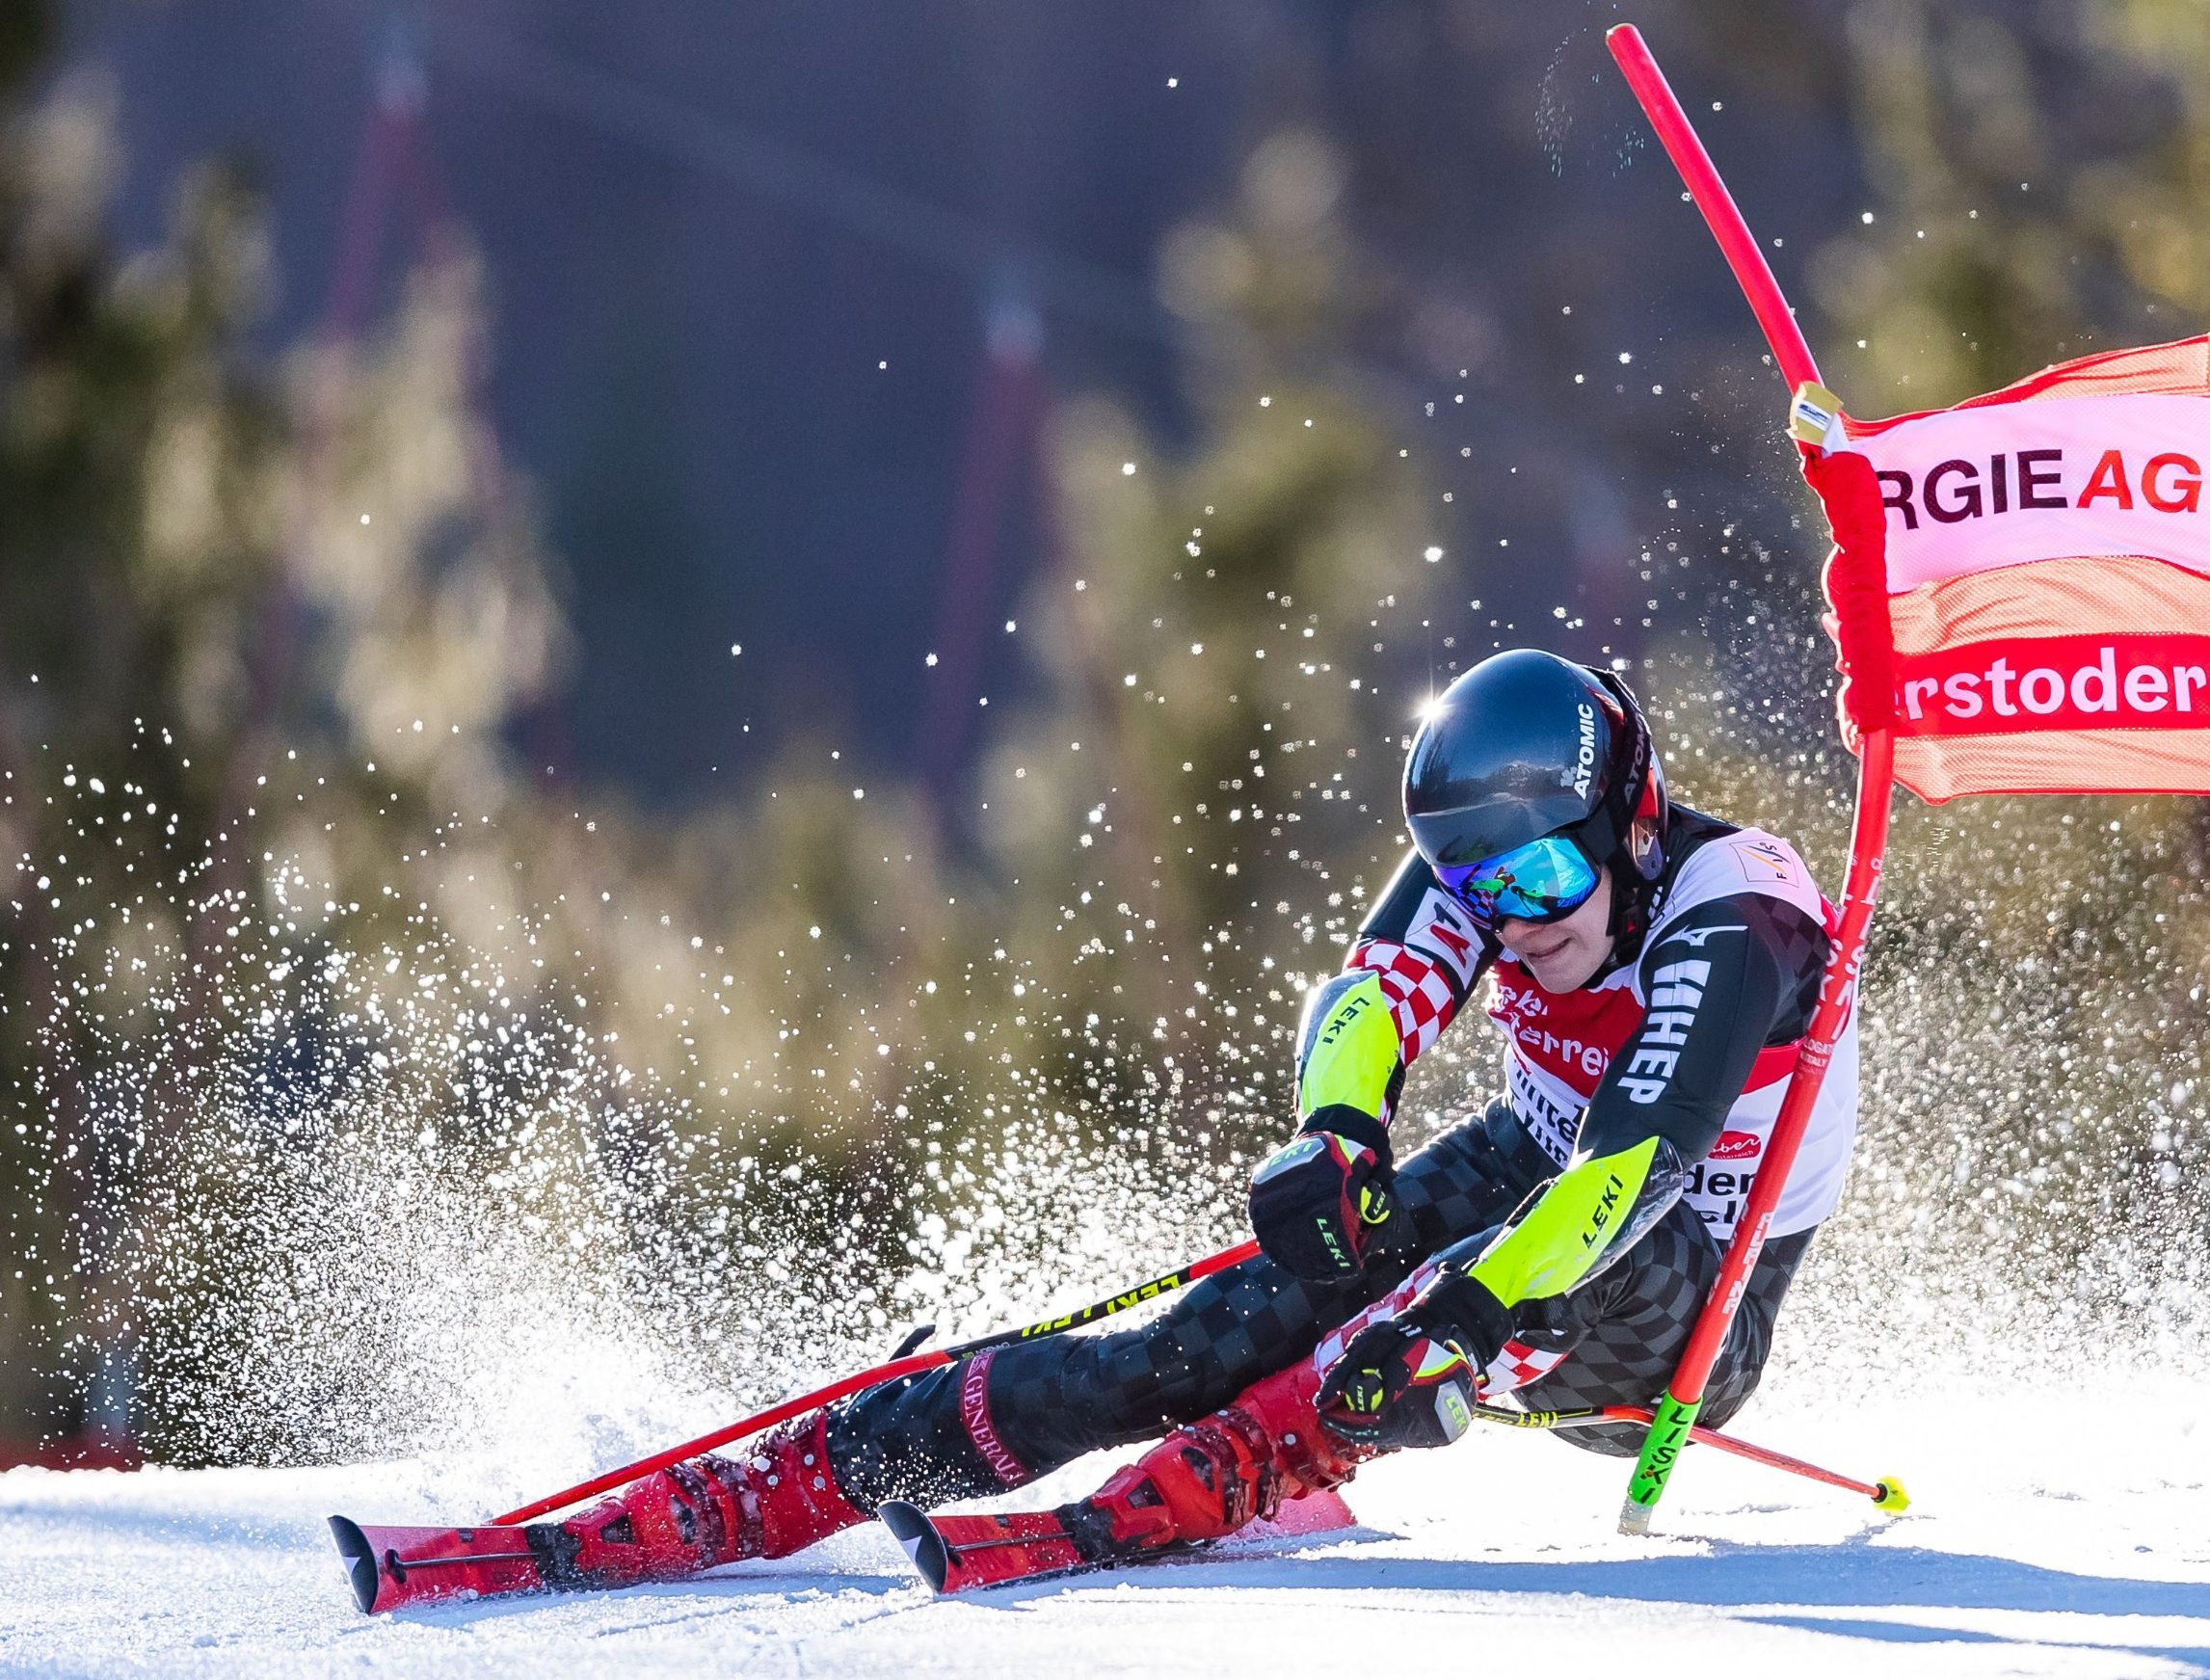 Filip Zubcic of Croatia competes during the first run of the men's giant slalom of the FIS Ski World Cup in Hinterstoder, Austria, on March 2, 2020. (Photo by Johann GRODER / various sources / AFP) / Austria OUT